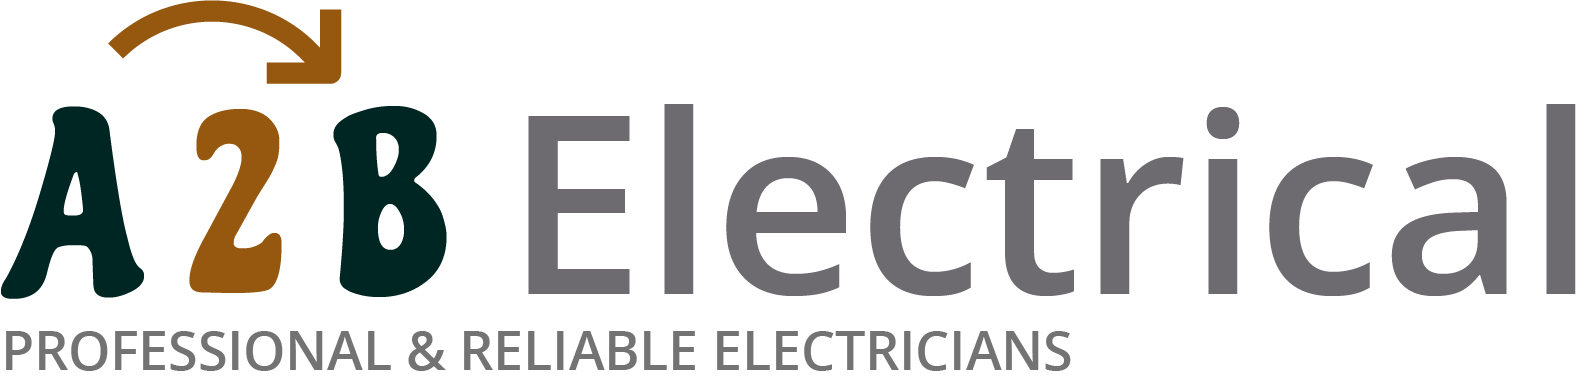 If you have electrical wiring problems in Stoke Newington, we can provide an electrician to have a look for you.